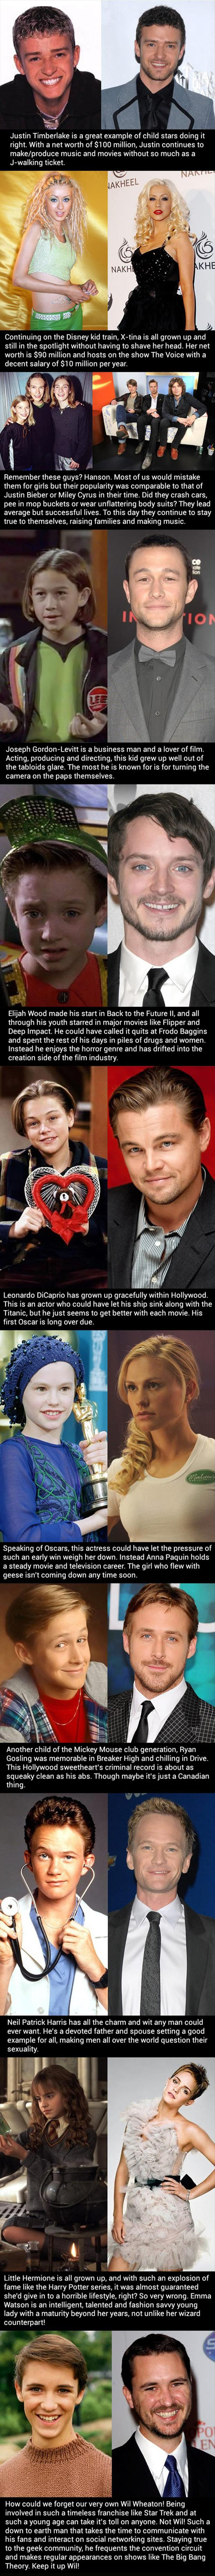 child stars who turned out fine